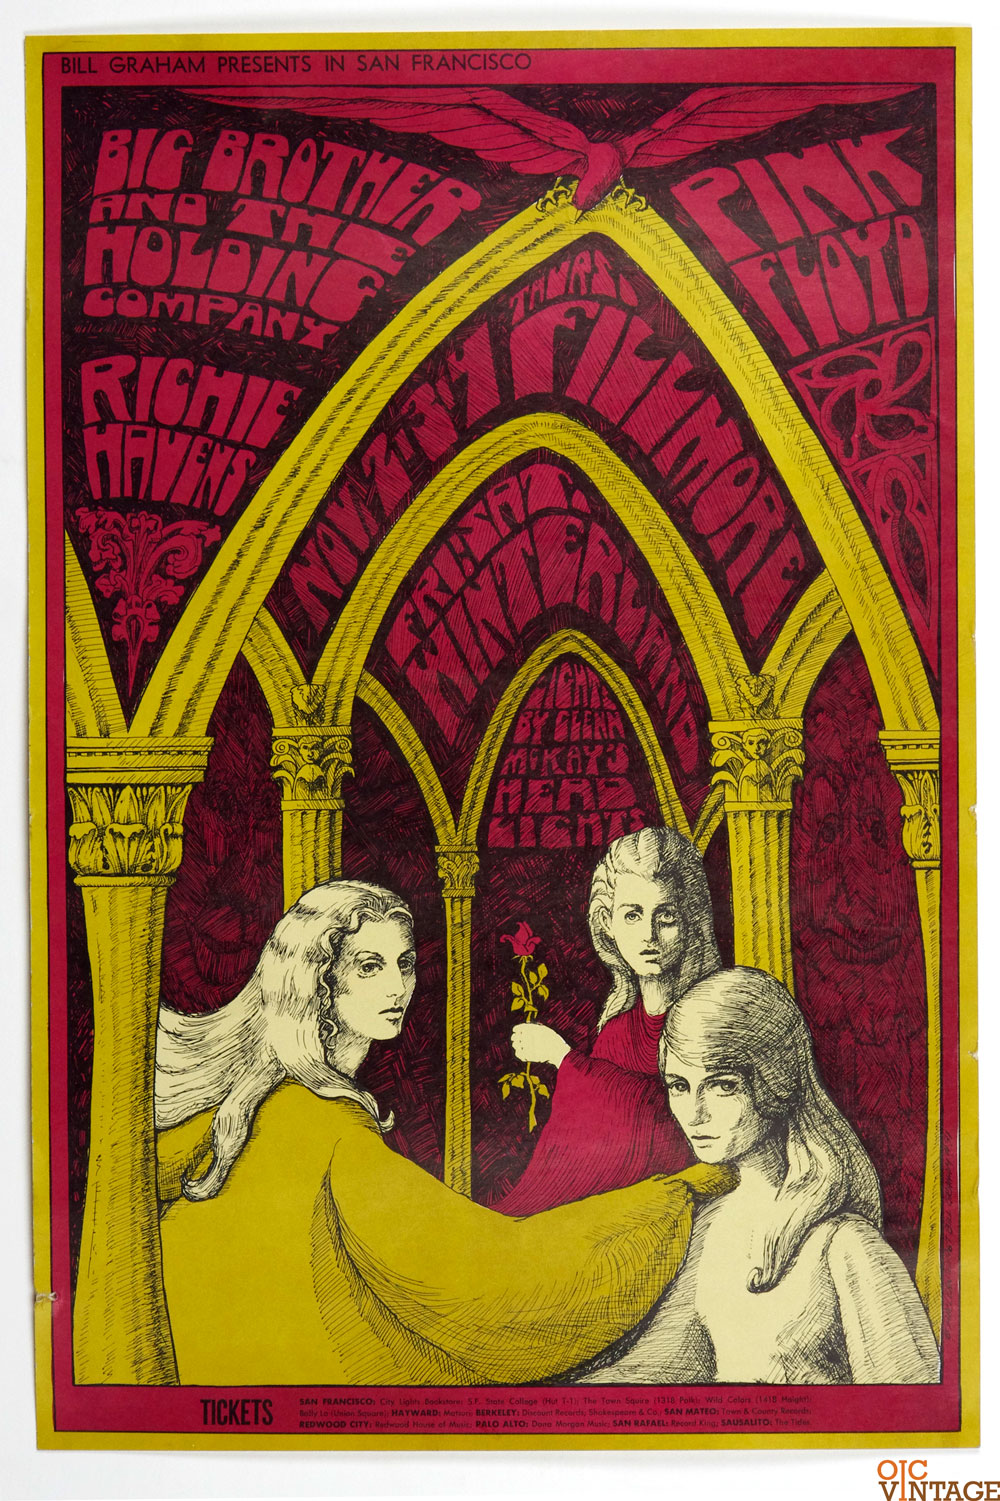 Bill Graham 091 Poster Pink Floyd Big Brother and The Holding co 1967 Nov 2